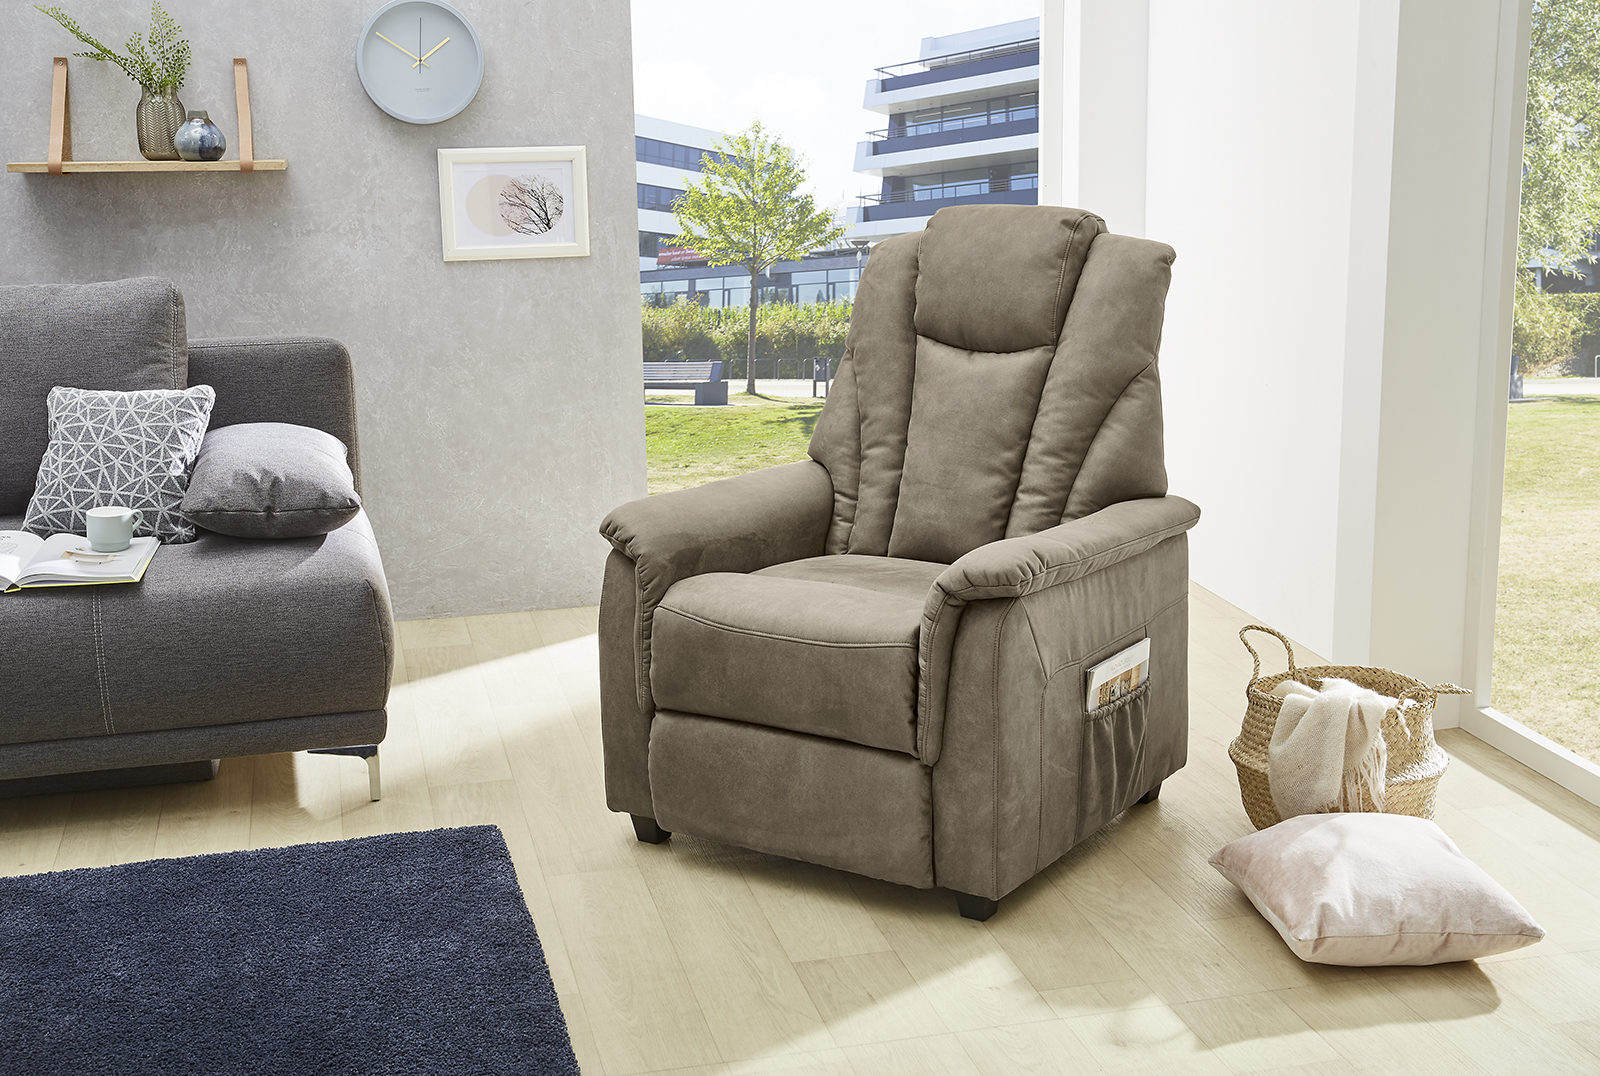 Sessel Stoff Mit Hocker Sessel Mit Hocker Stoff